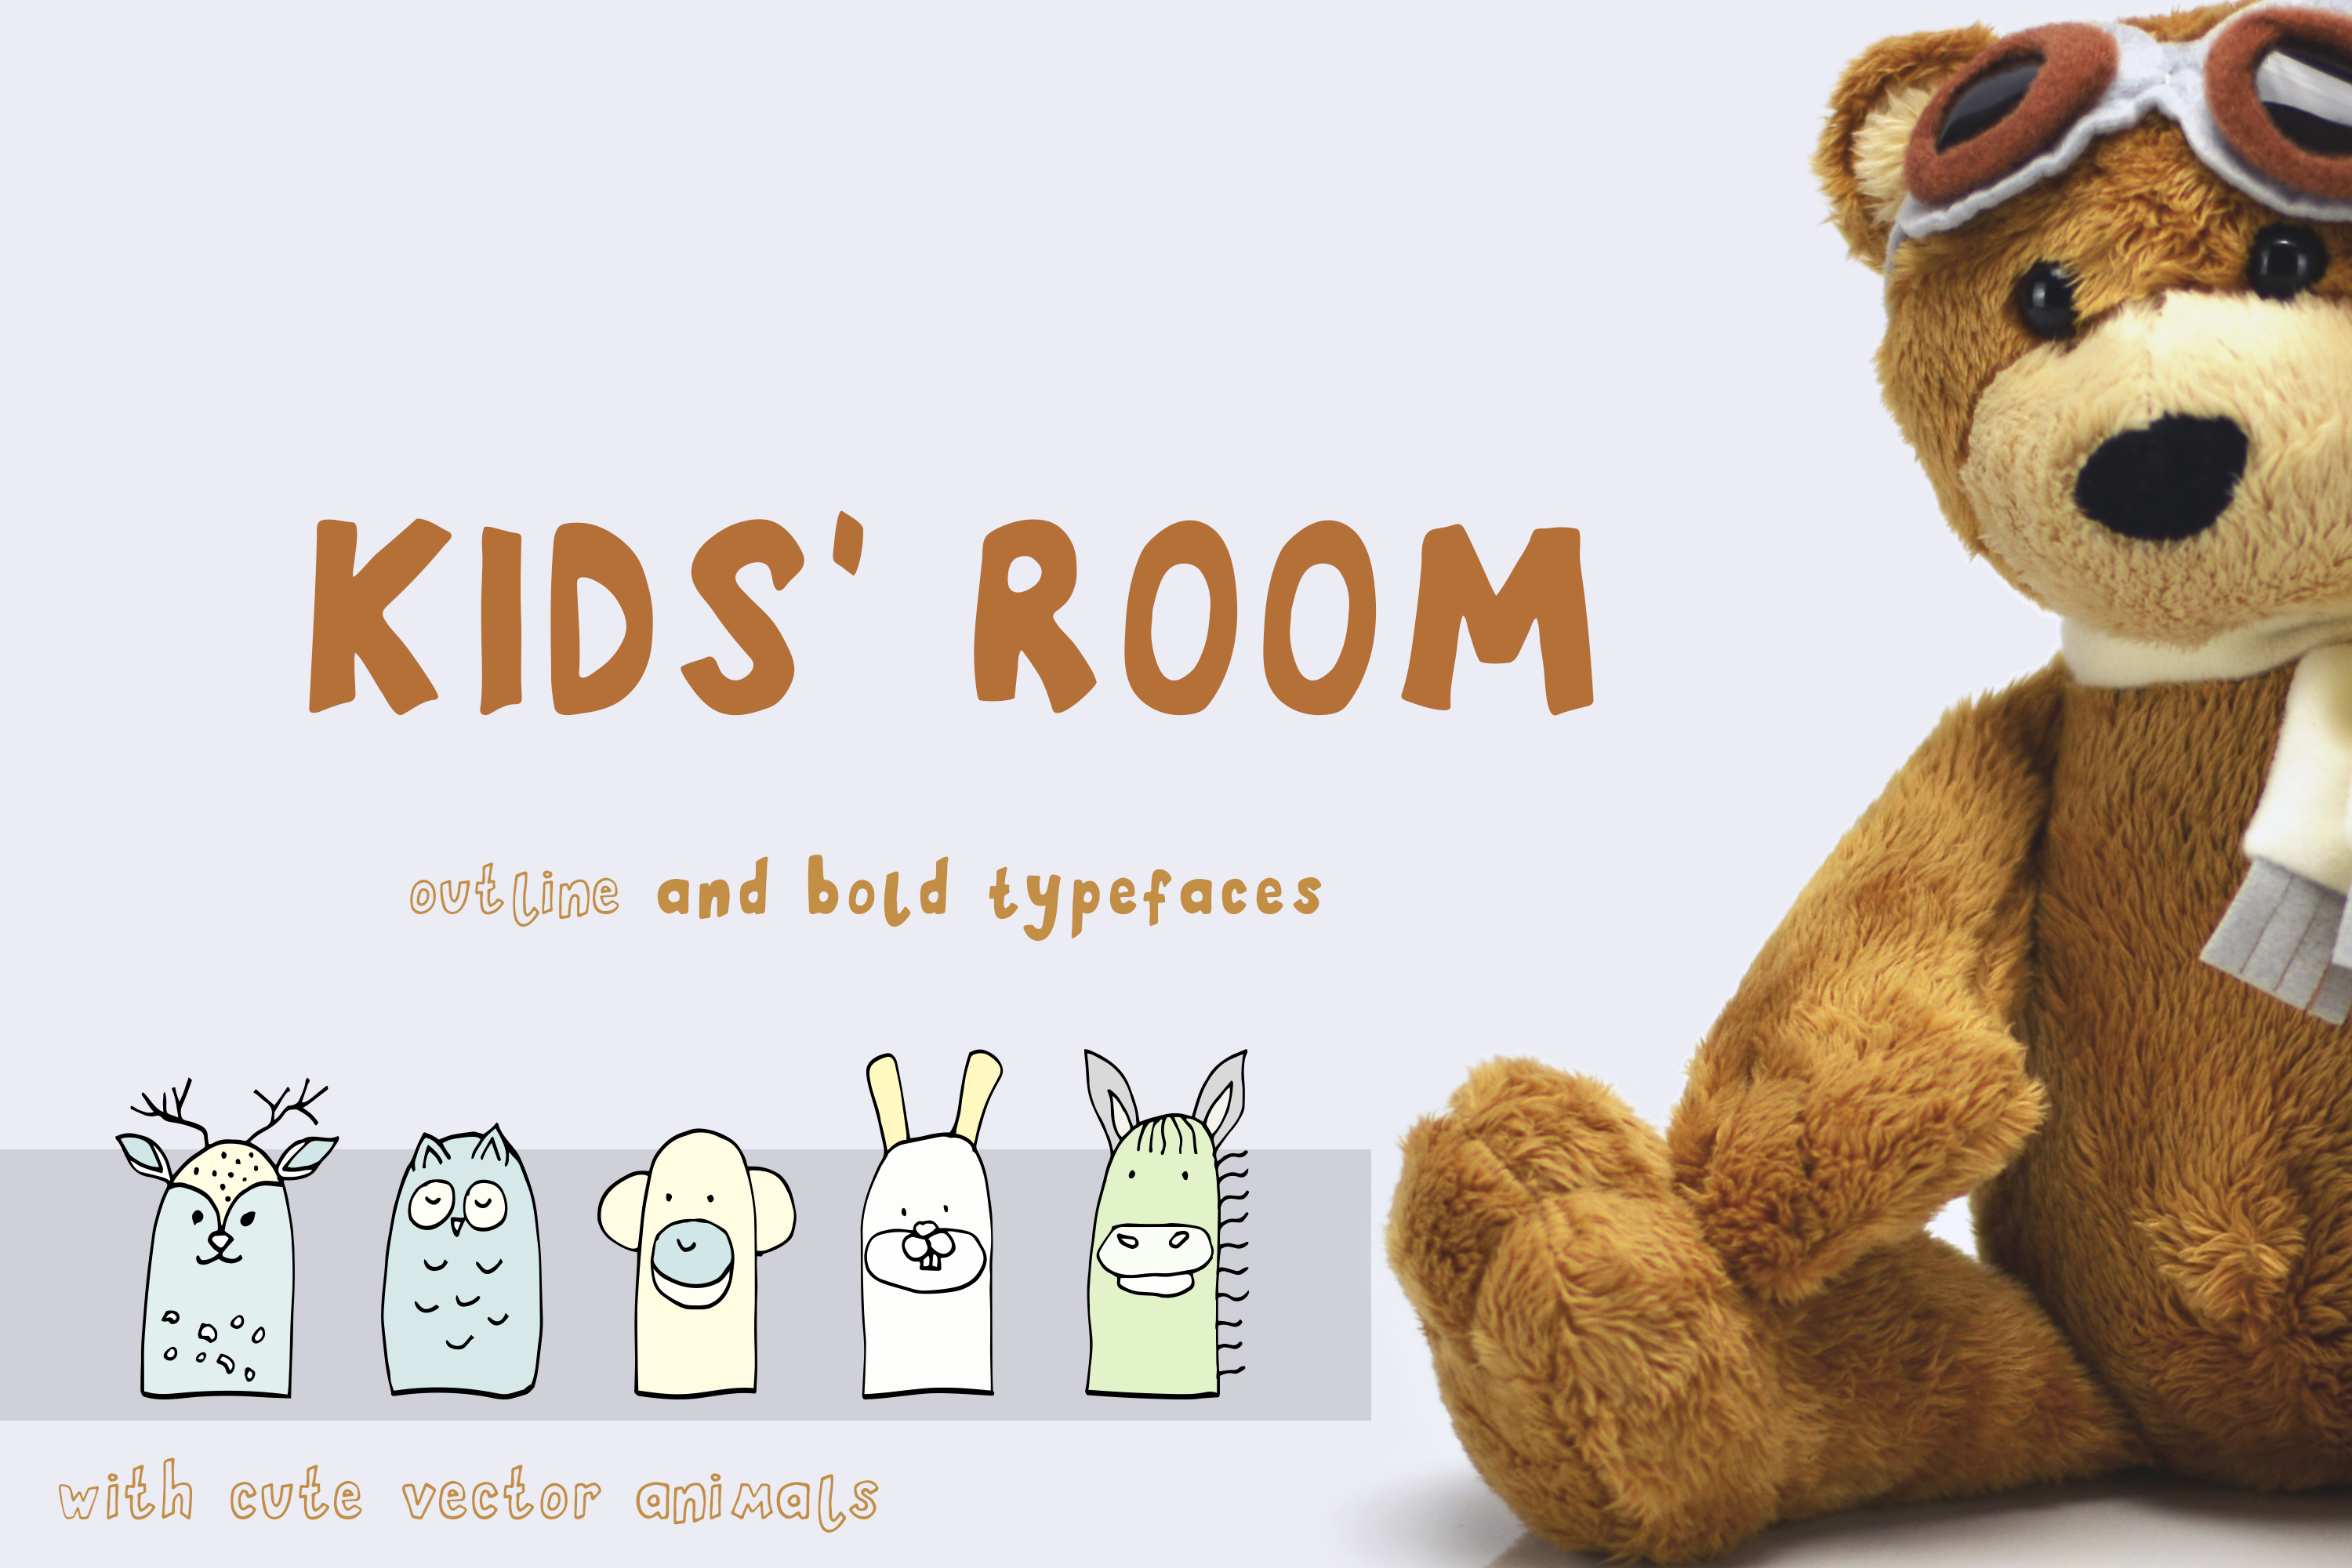 Kids' Room typeface with Outline and Solid versions example image 1